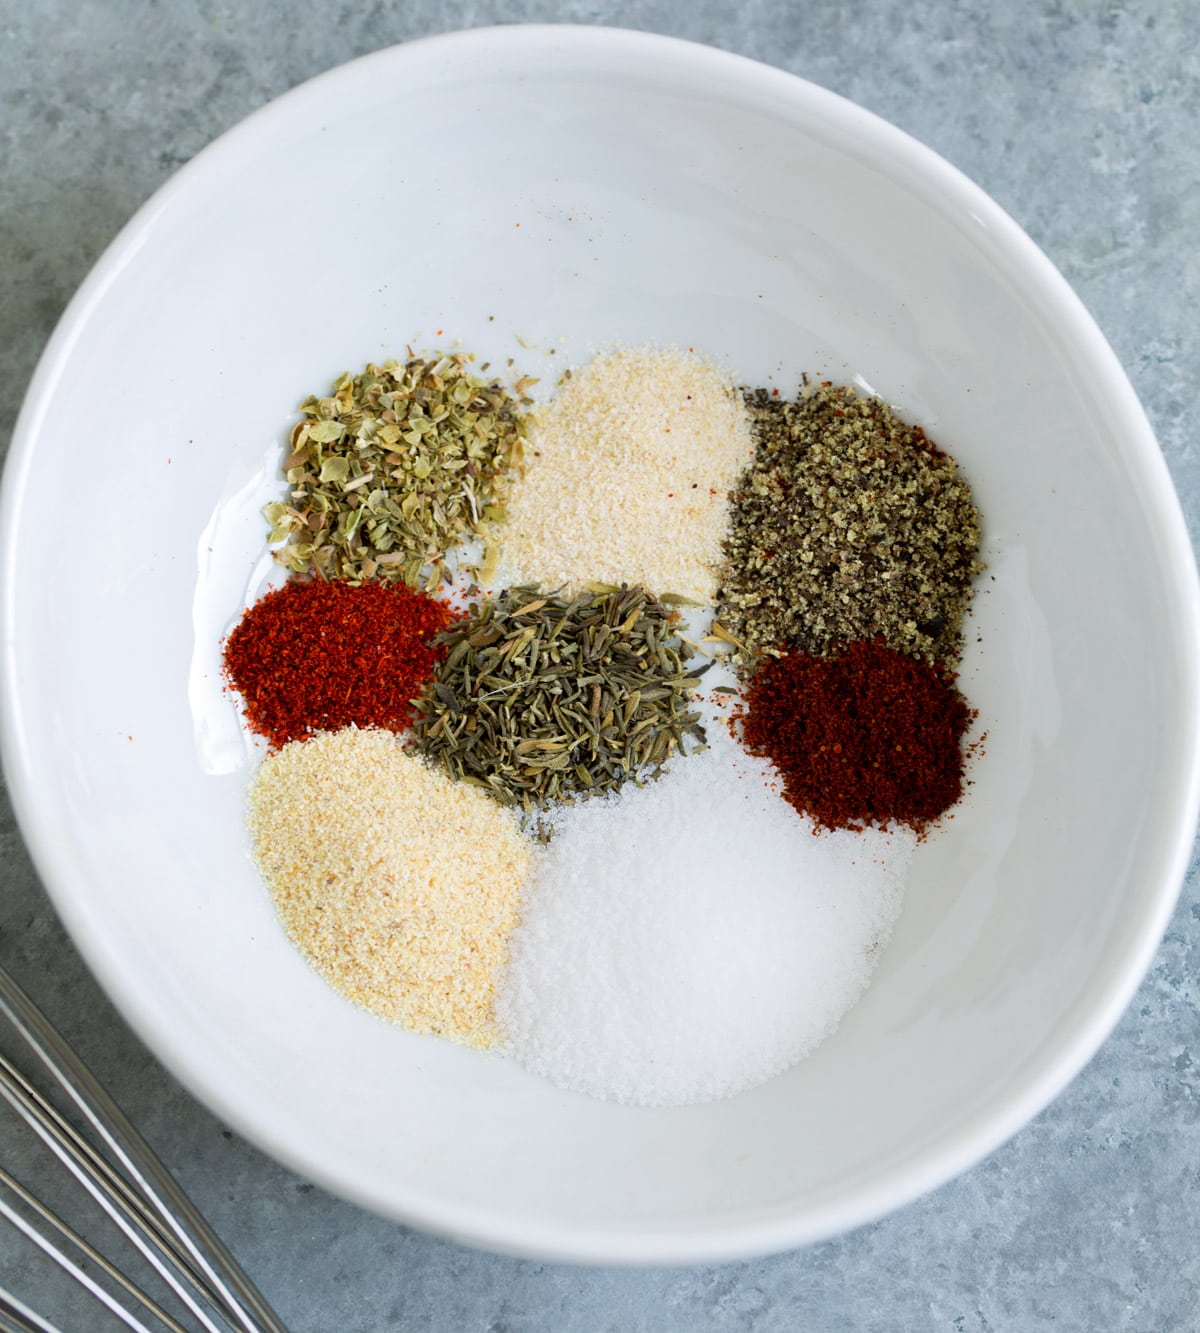 Spices in a mixing bowl to season baked chicken.